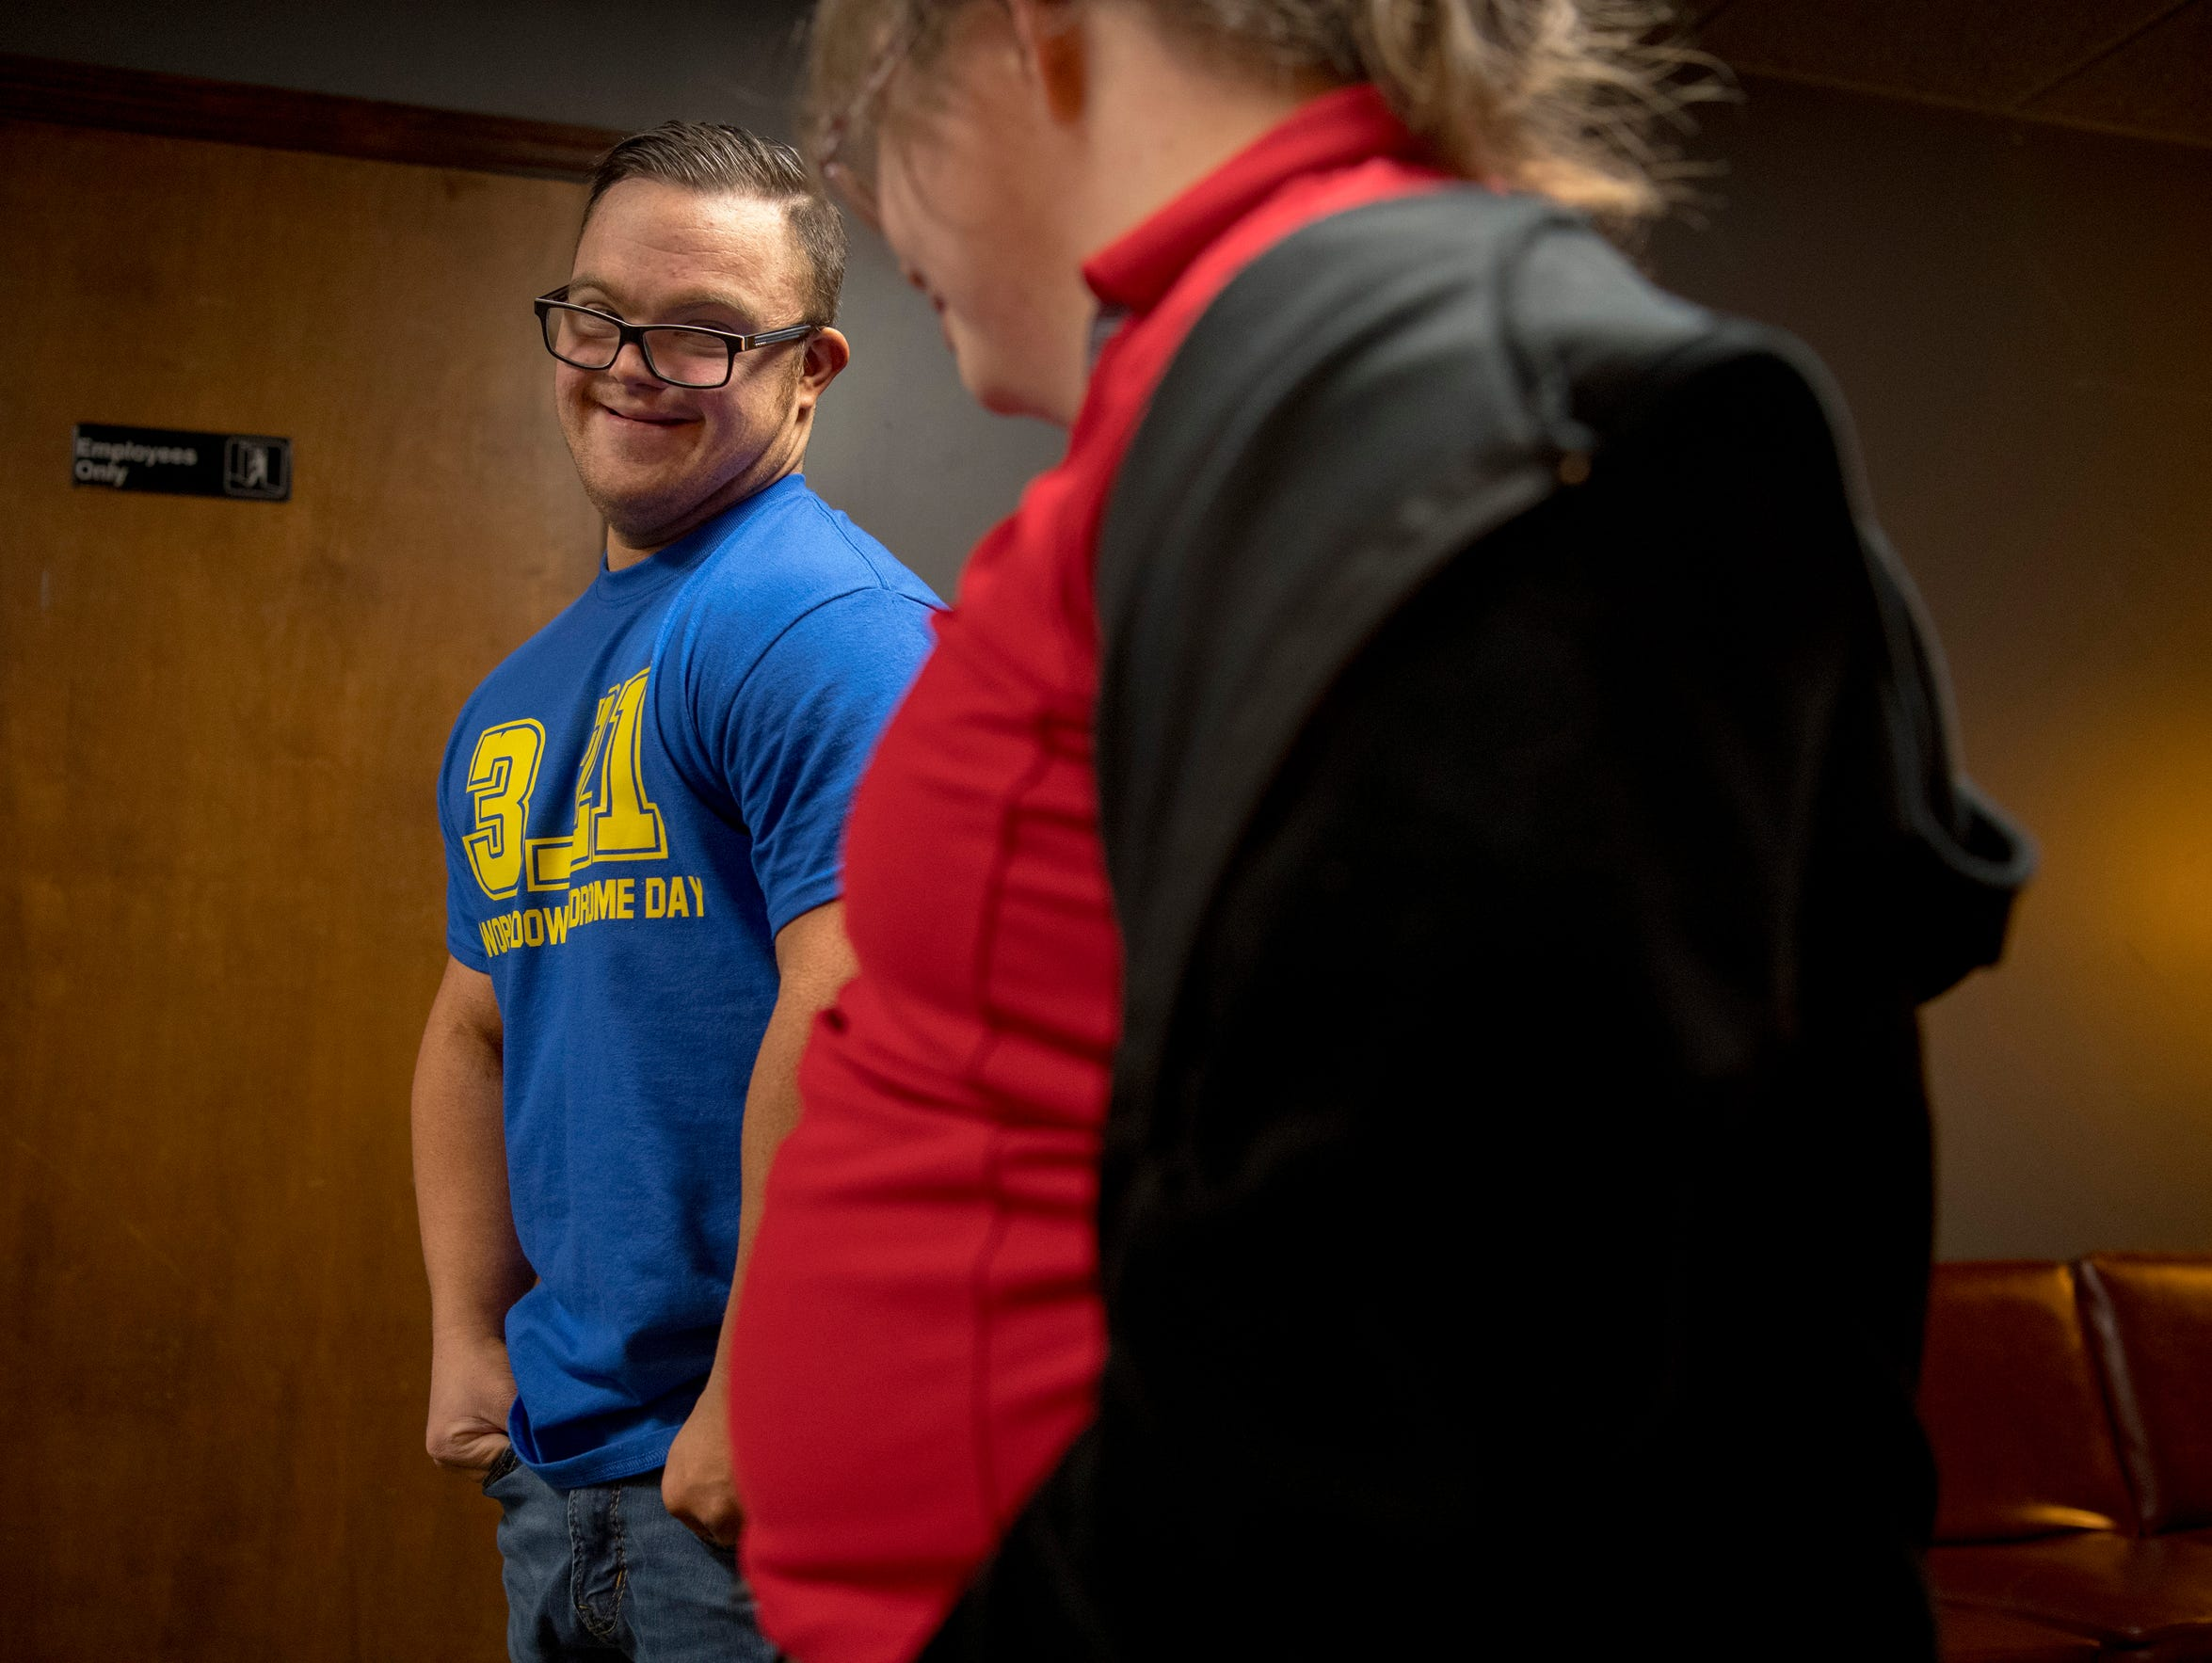 Collin Clarke, left, visits with Tess Fuller at an